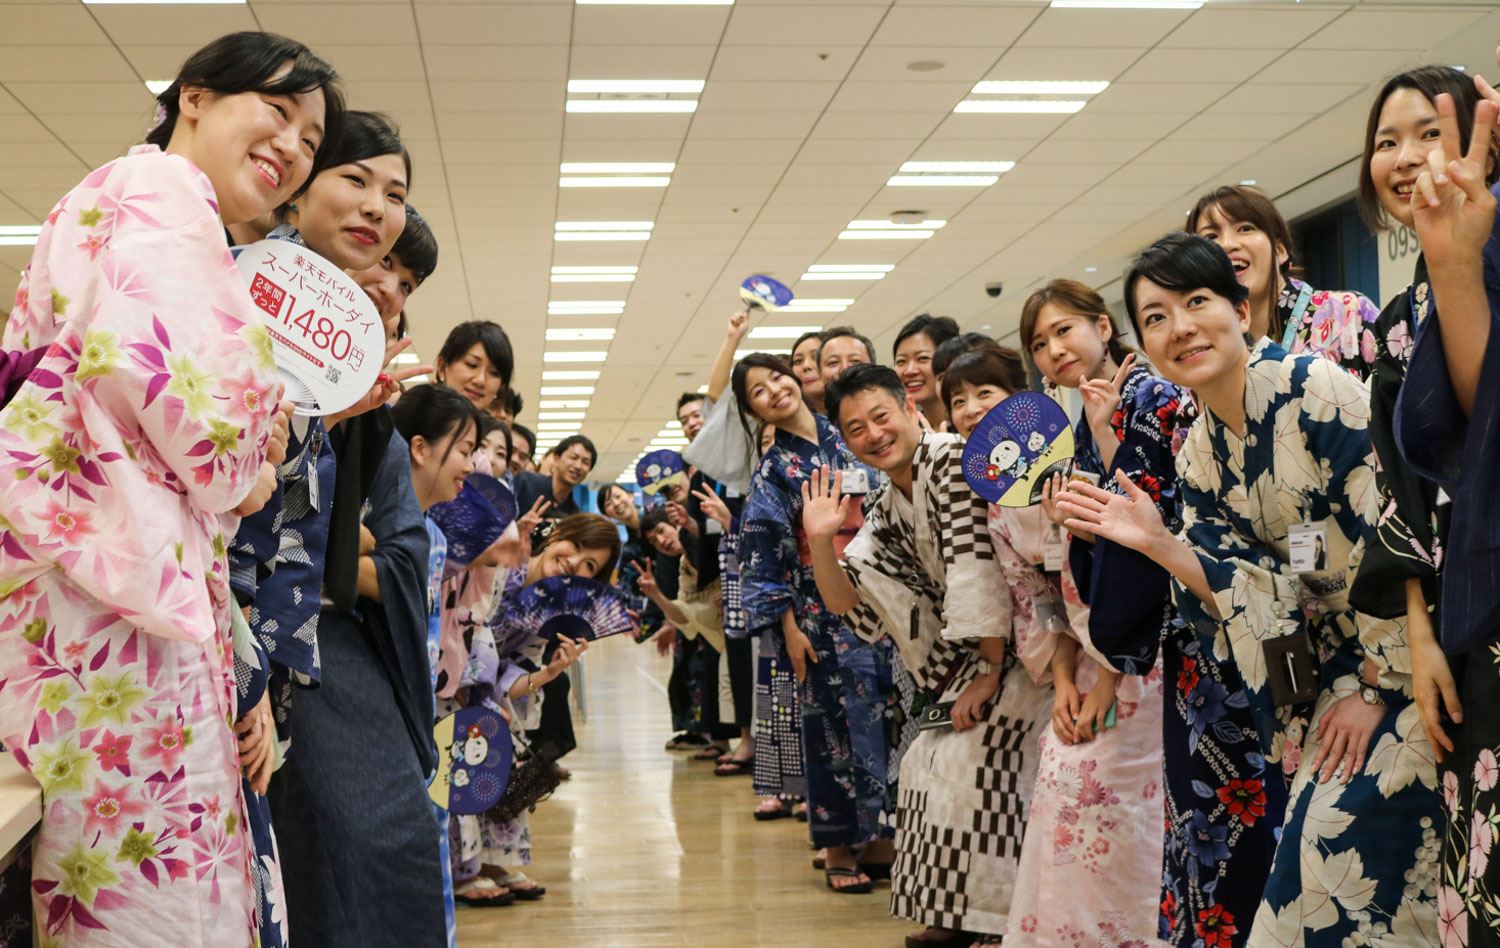 Shaved ice, yukata and drones: Rakuten employees celebrate Tanabata Festival in Tokyo